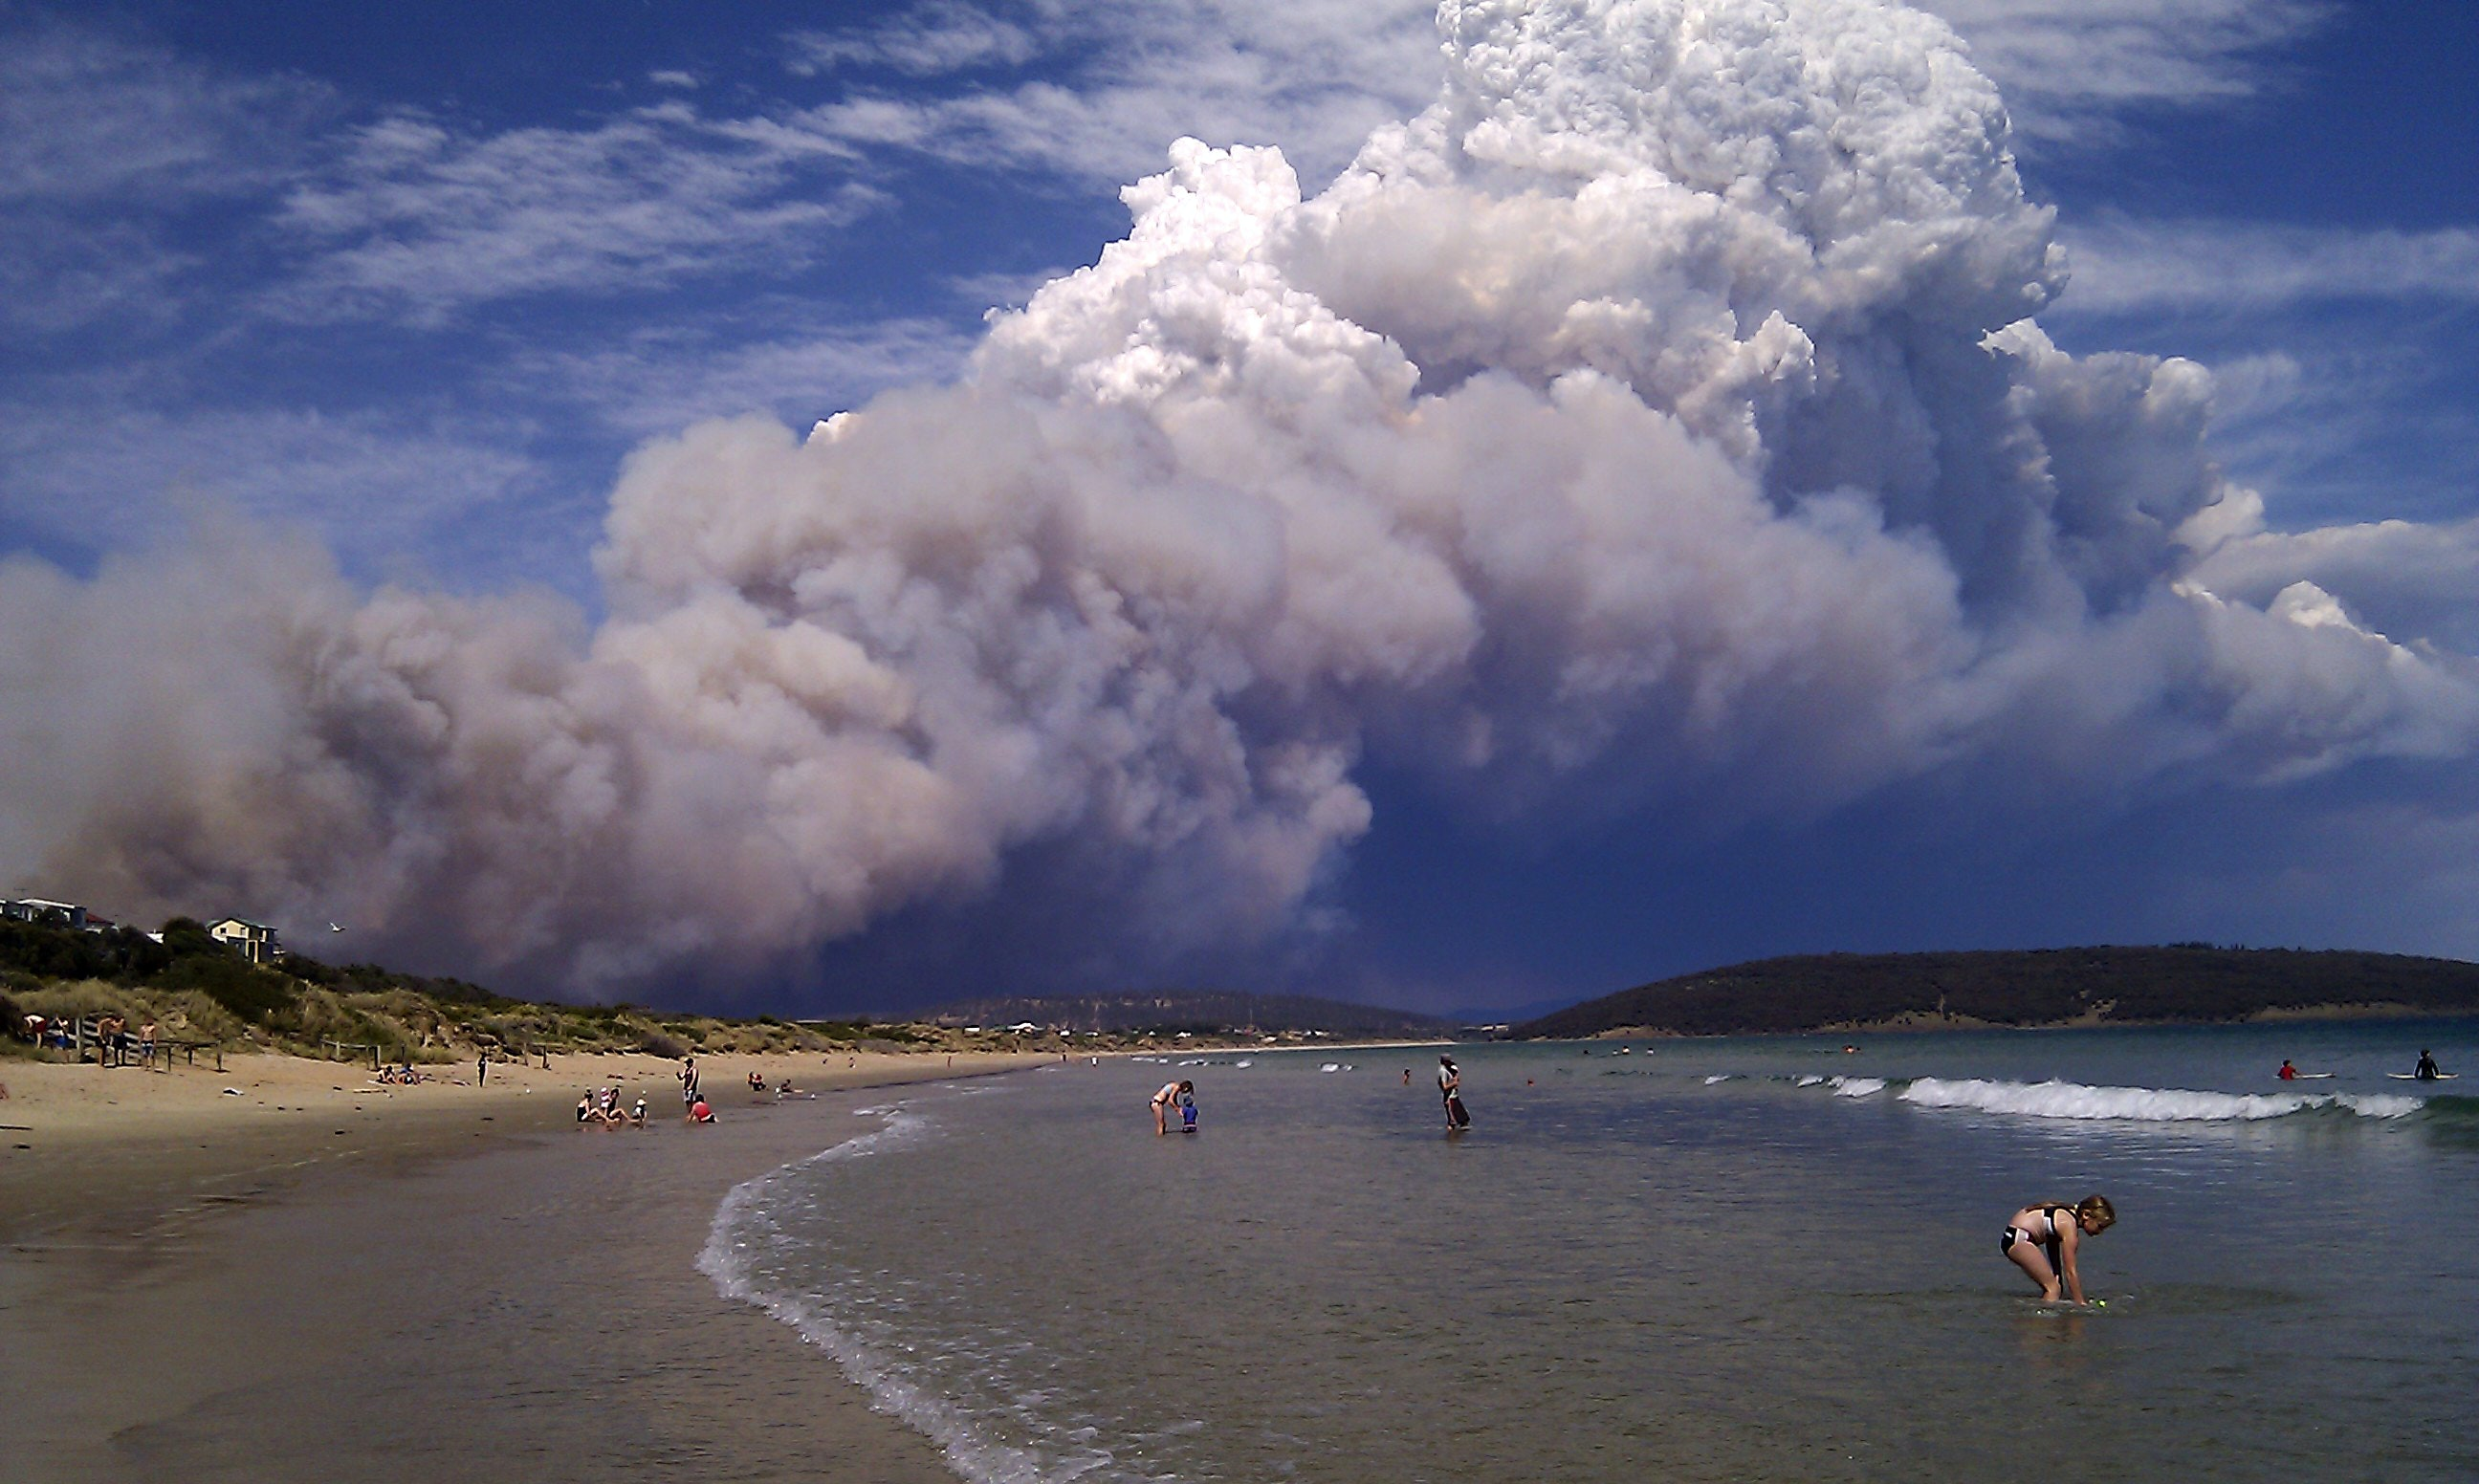 Smoke from bushfires poses a health hazard for all of us